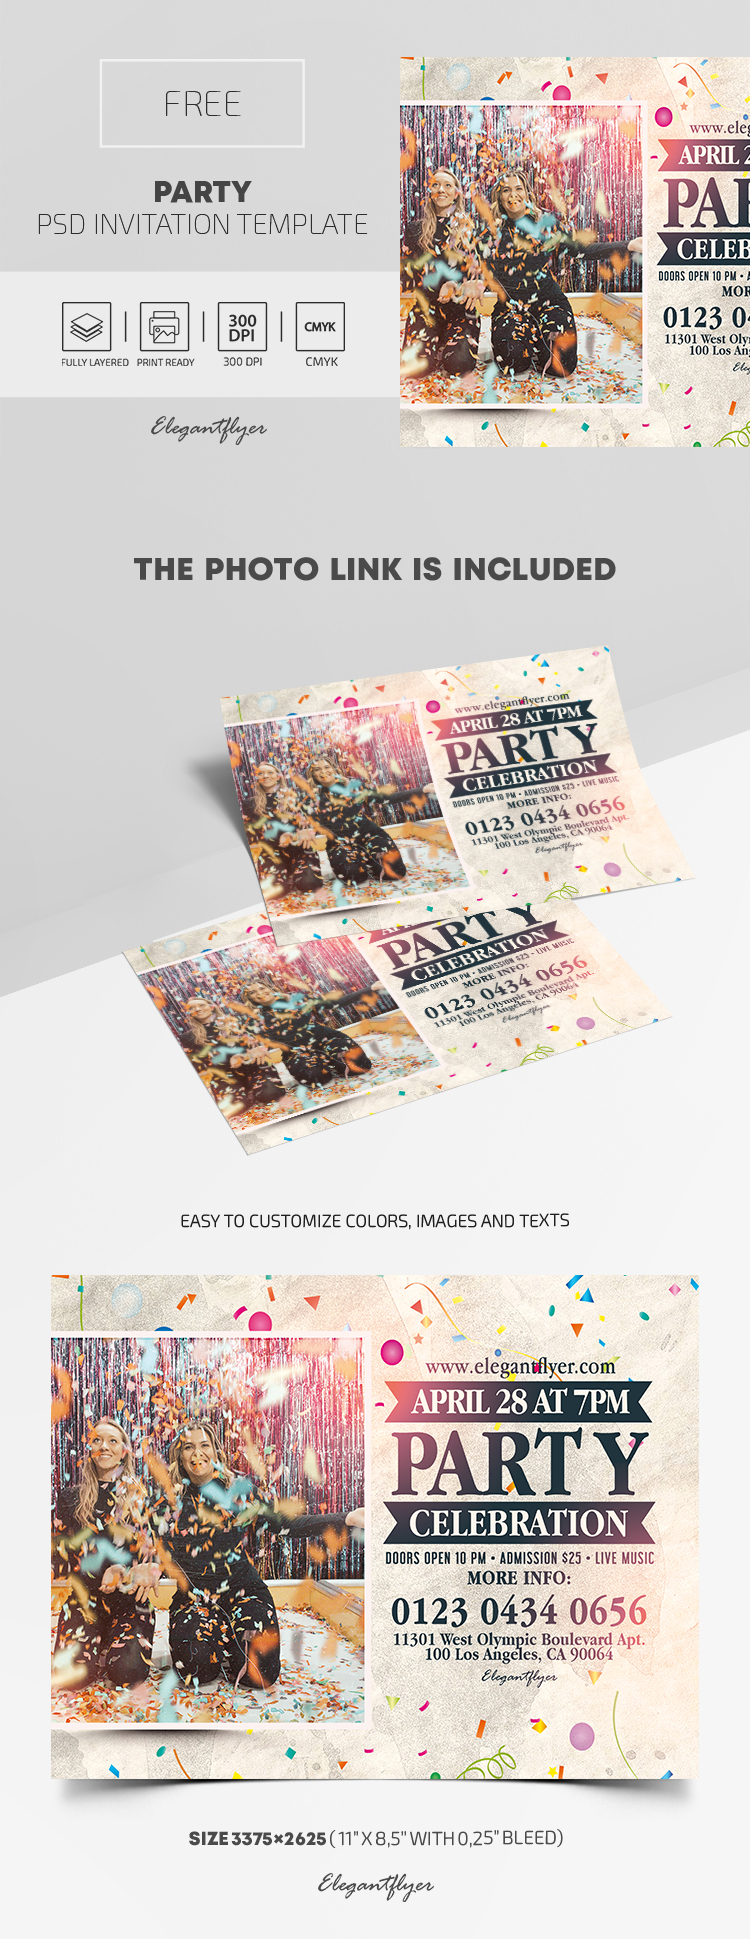 Party – Free PSD Invitation Template